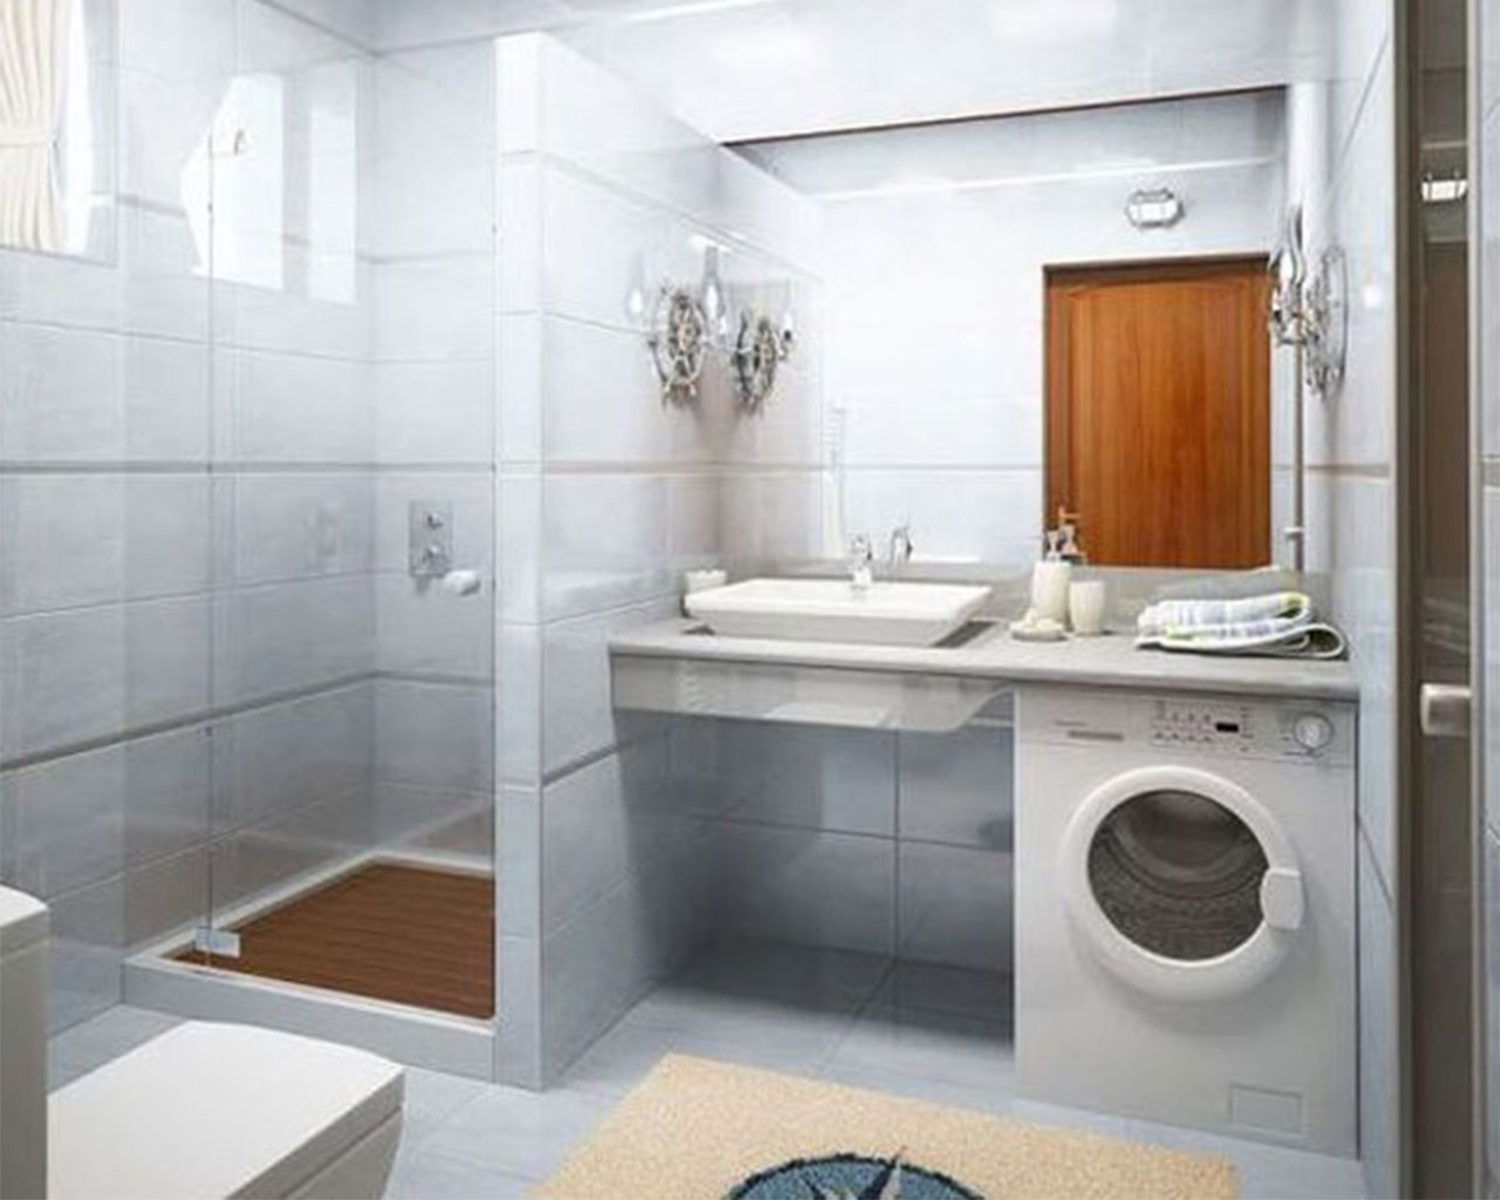 Delicieux Simple Bathroom Design Idea With Washing Machine